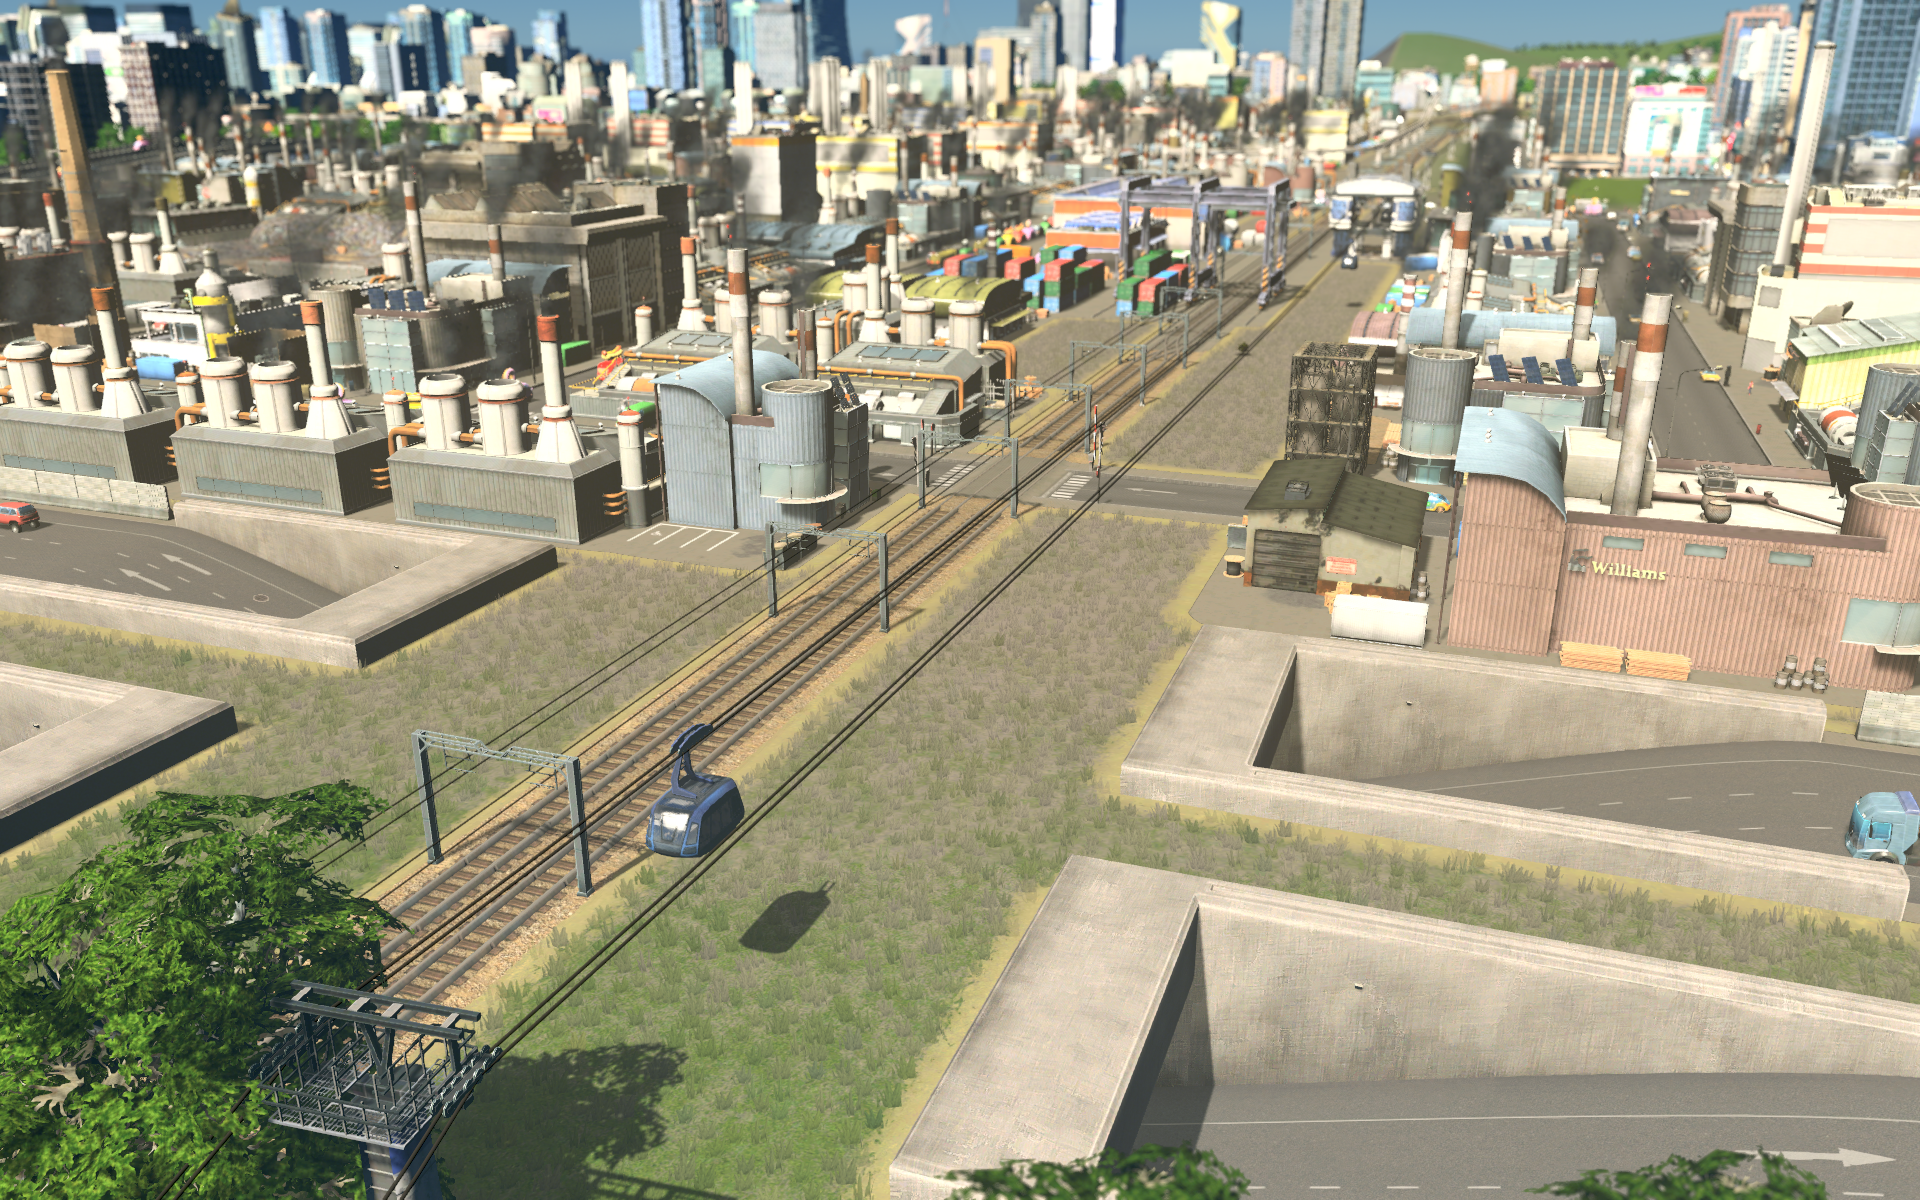 connecting_cable_car_to_industrial_area.png